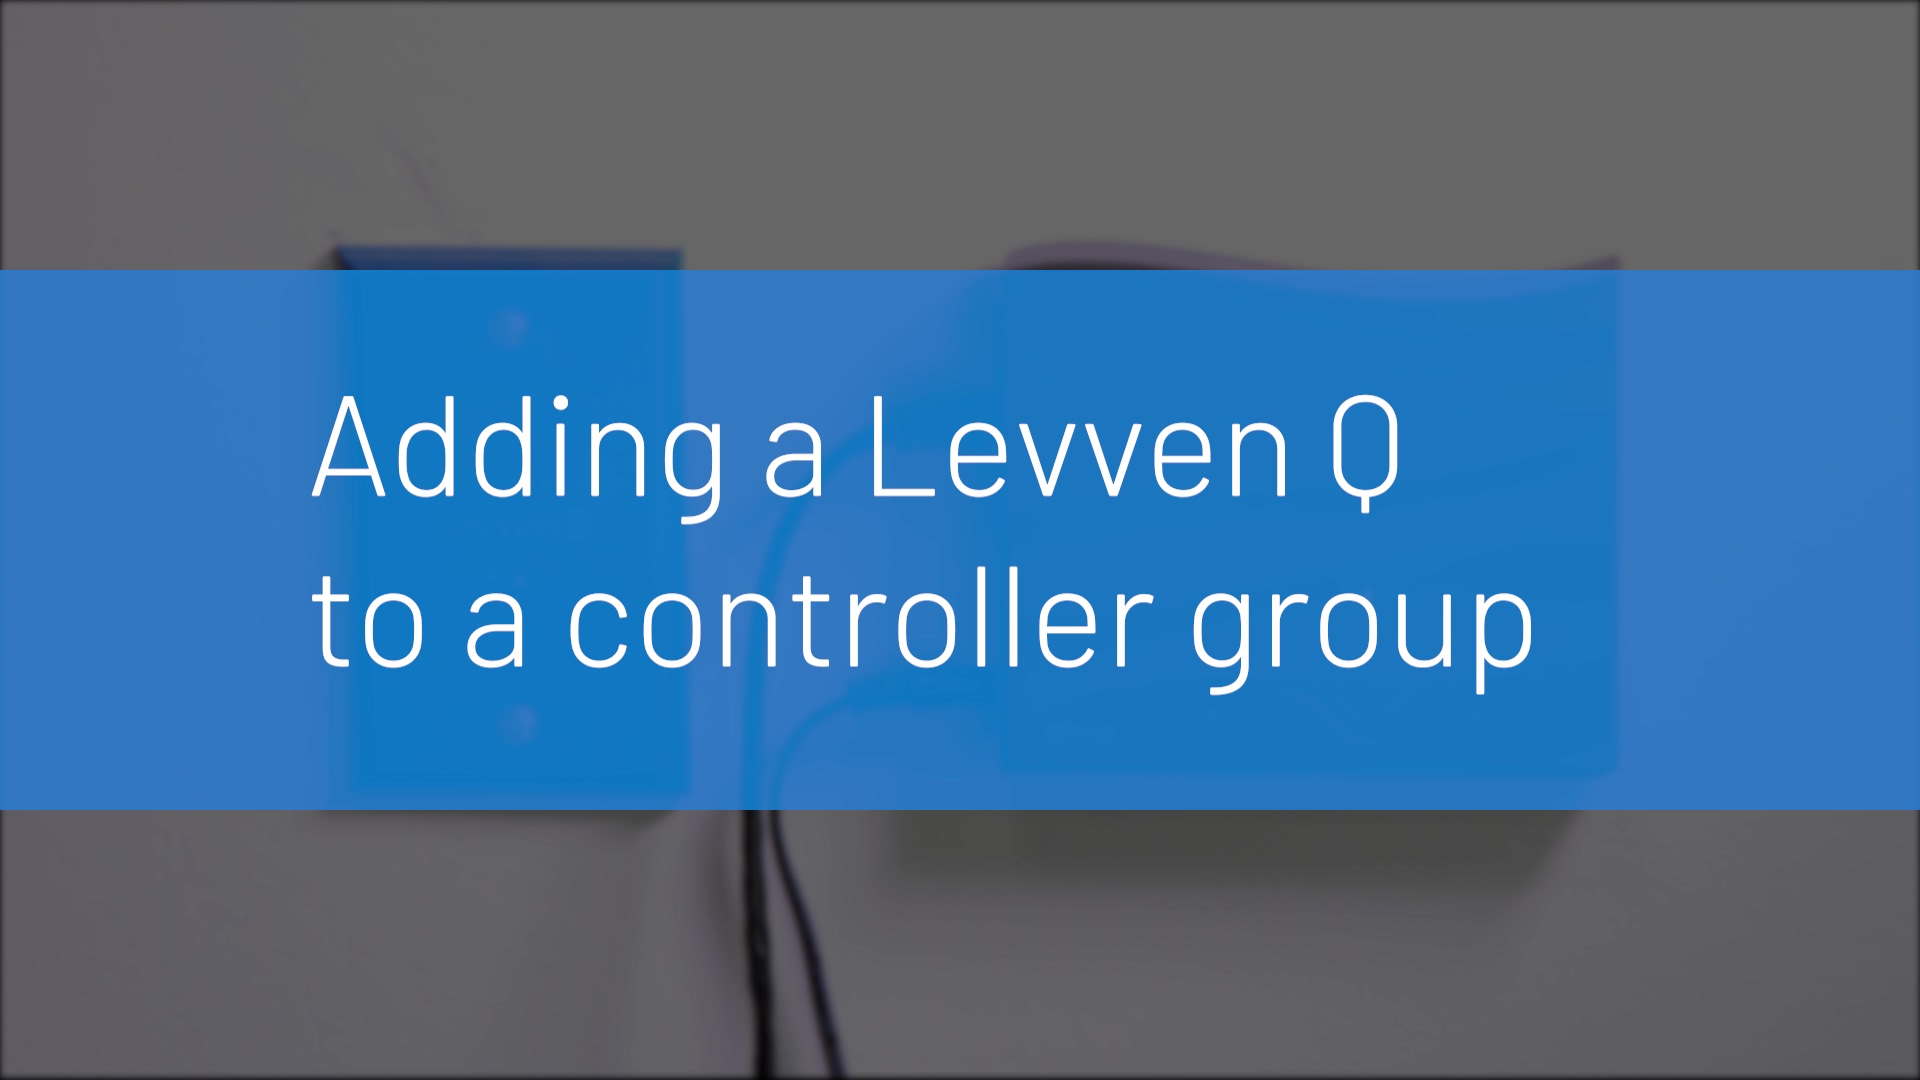 Group Levven Q with Blue Plate Controller